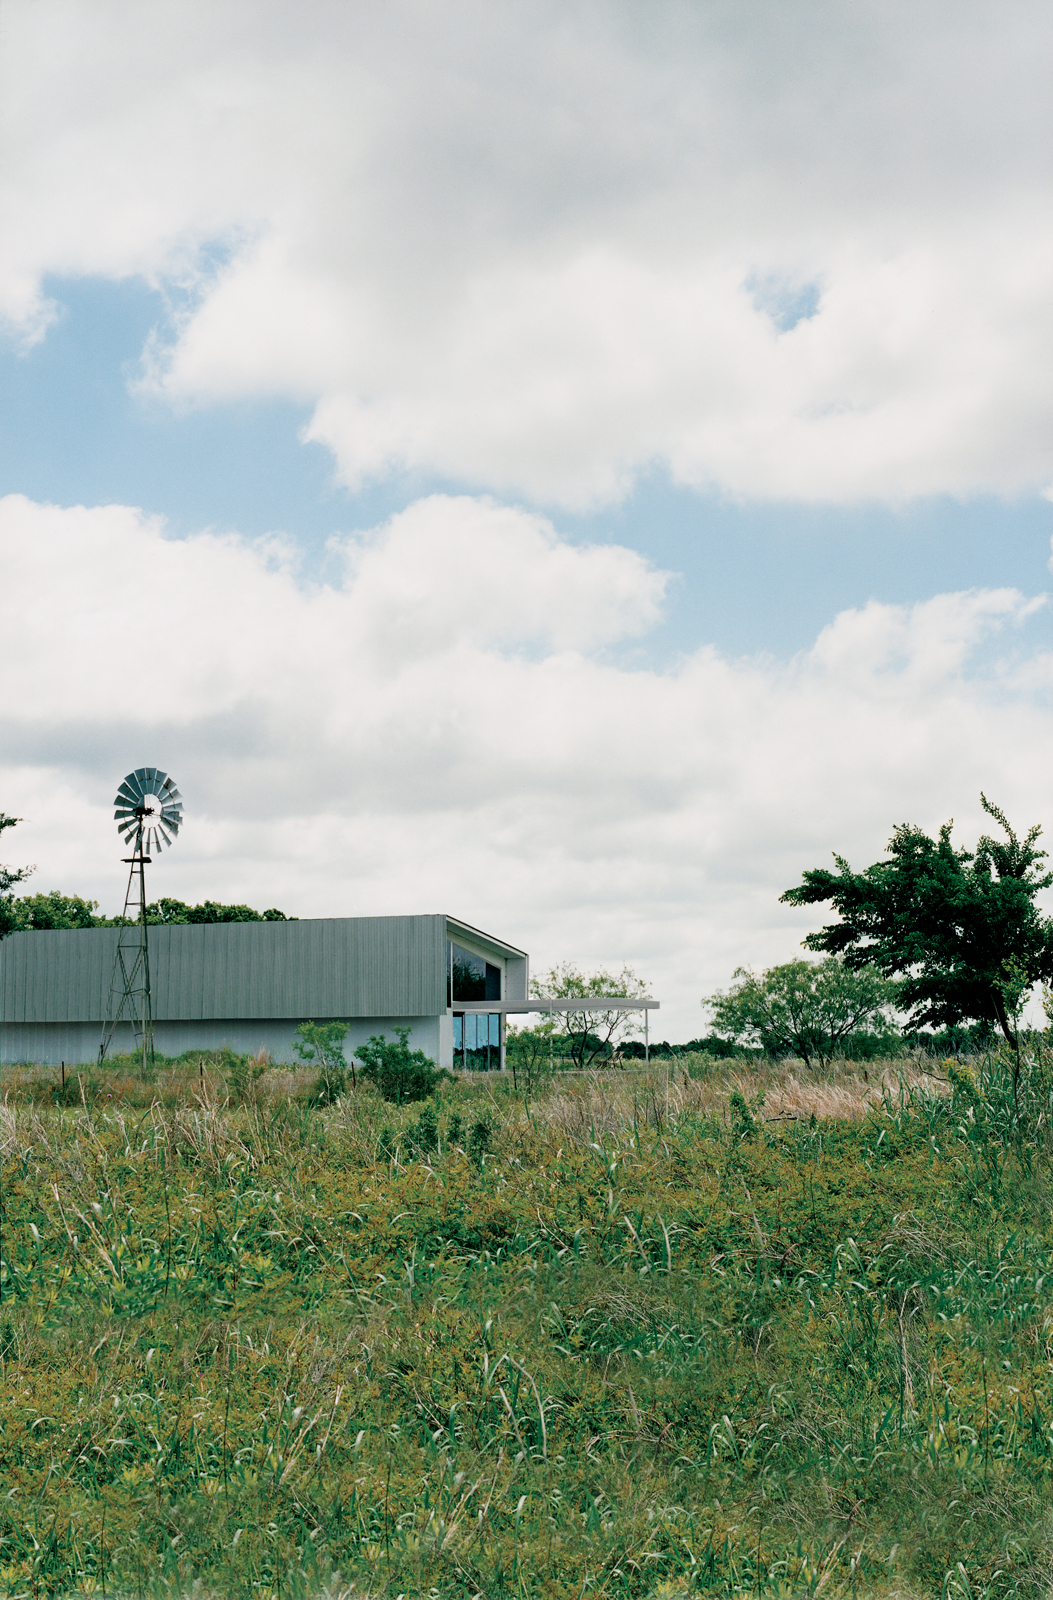 farley studio exterior view from field